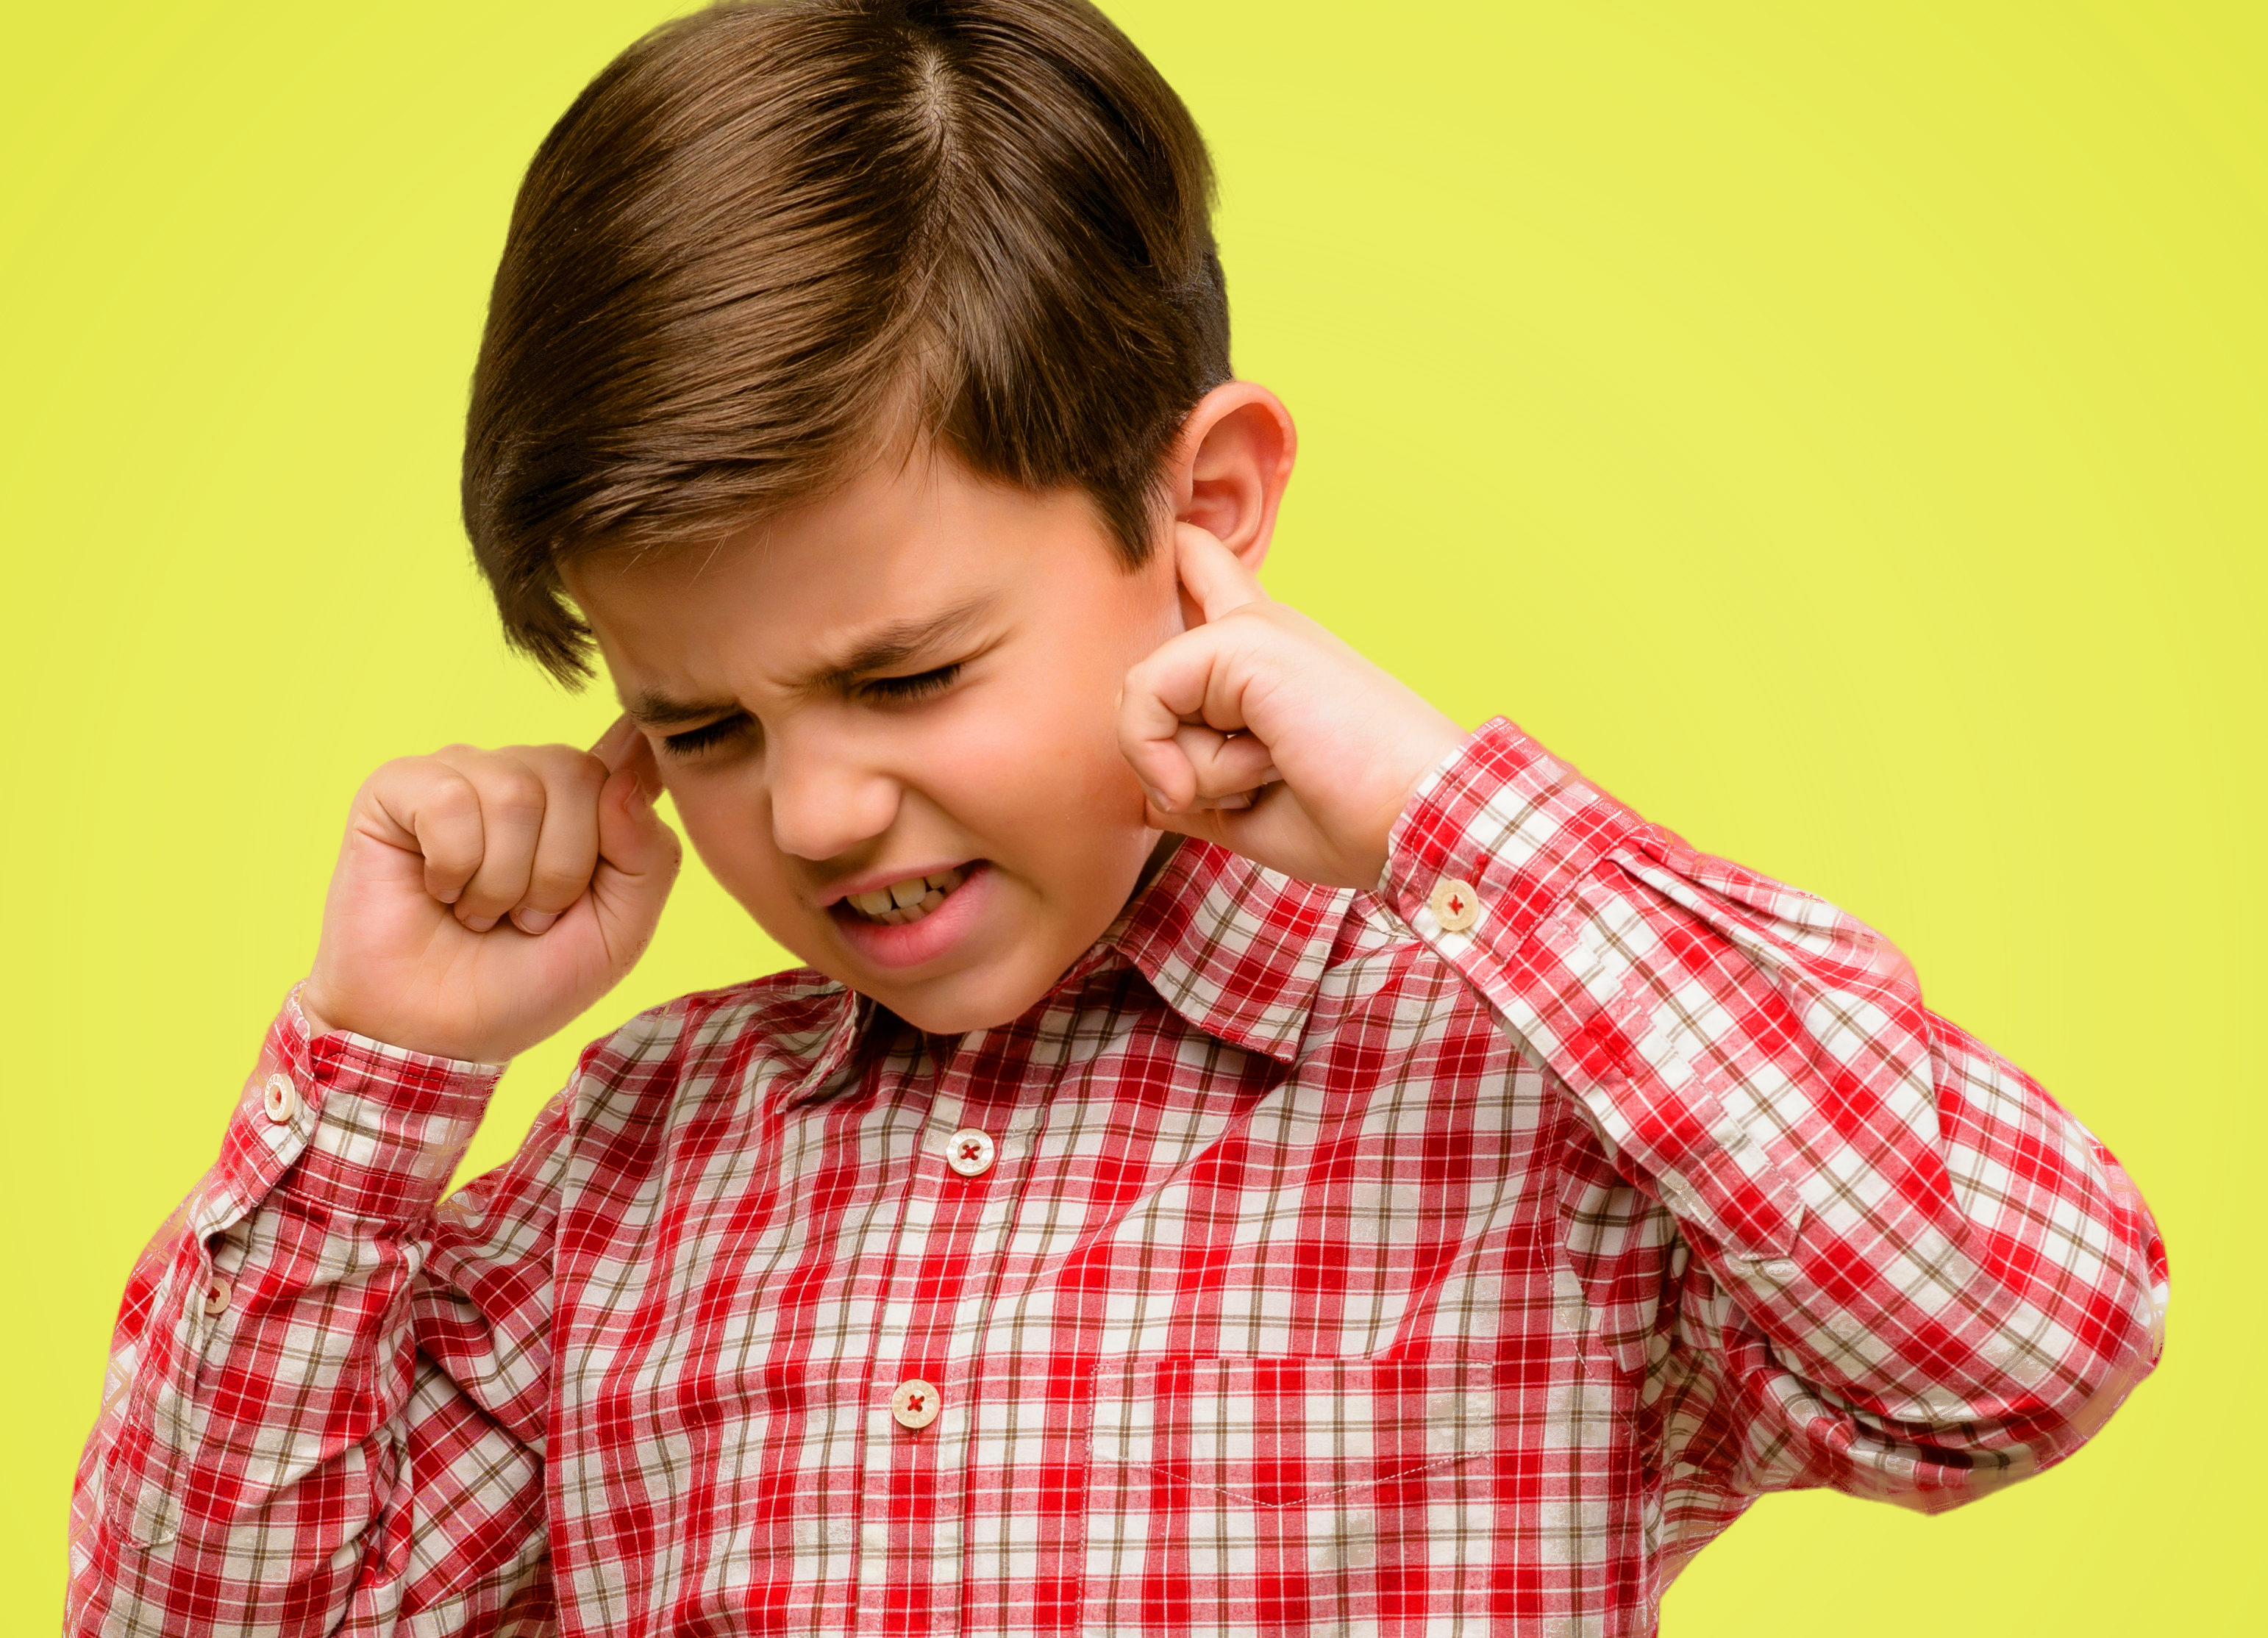 Did you know that complaining about your children can be counterproductive?